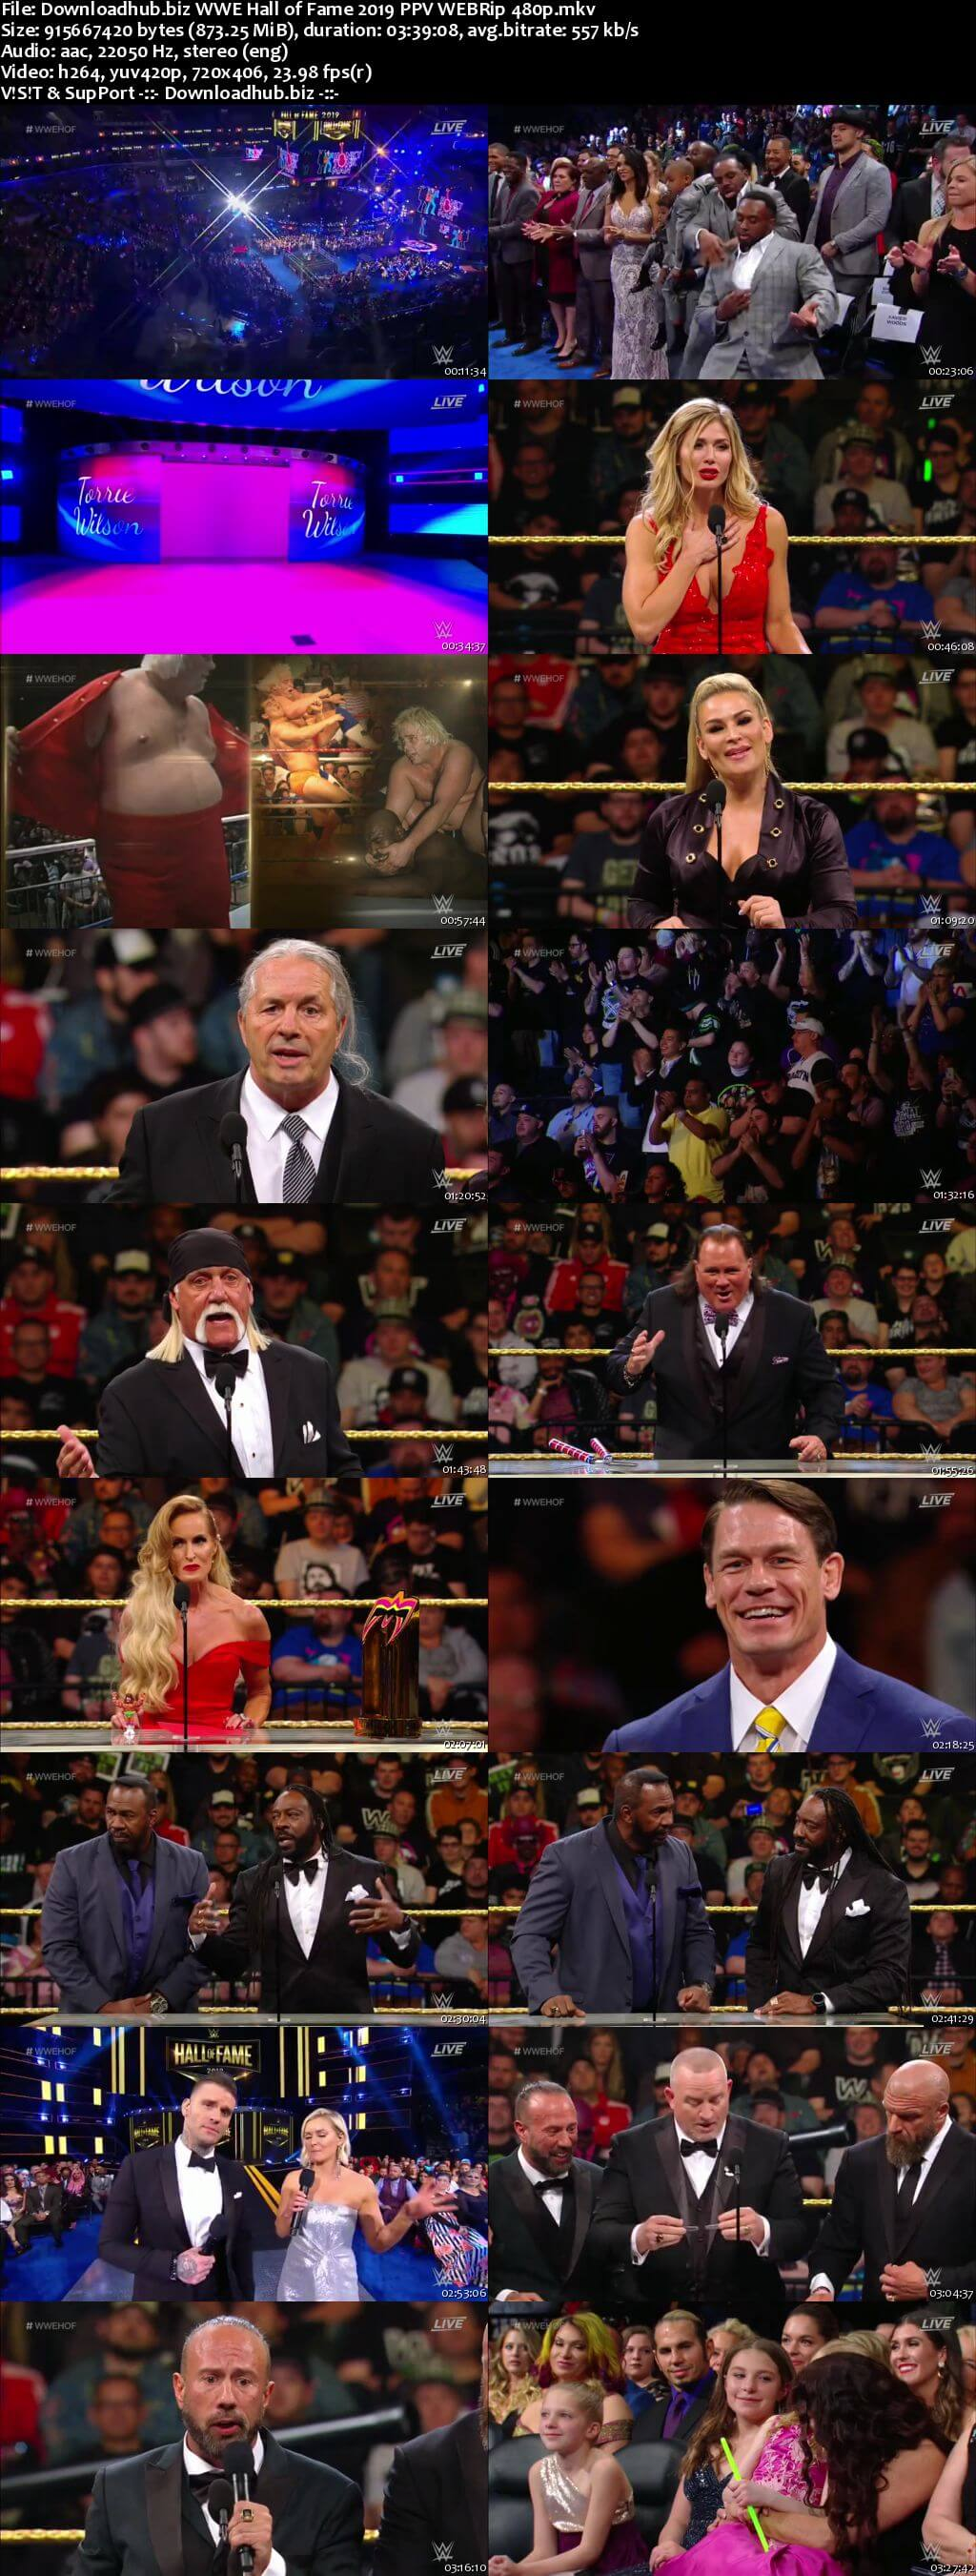 WWE Hall of Fame 6th April 2019 850MB PPV WEBRip 480p